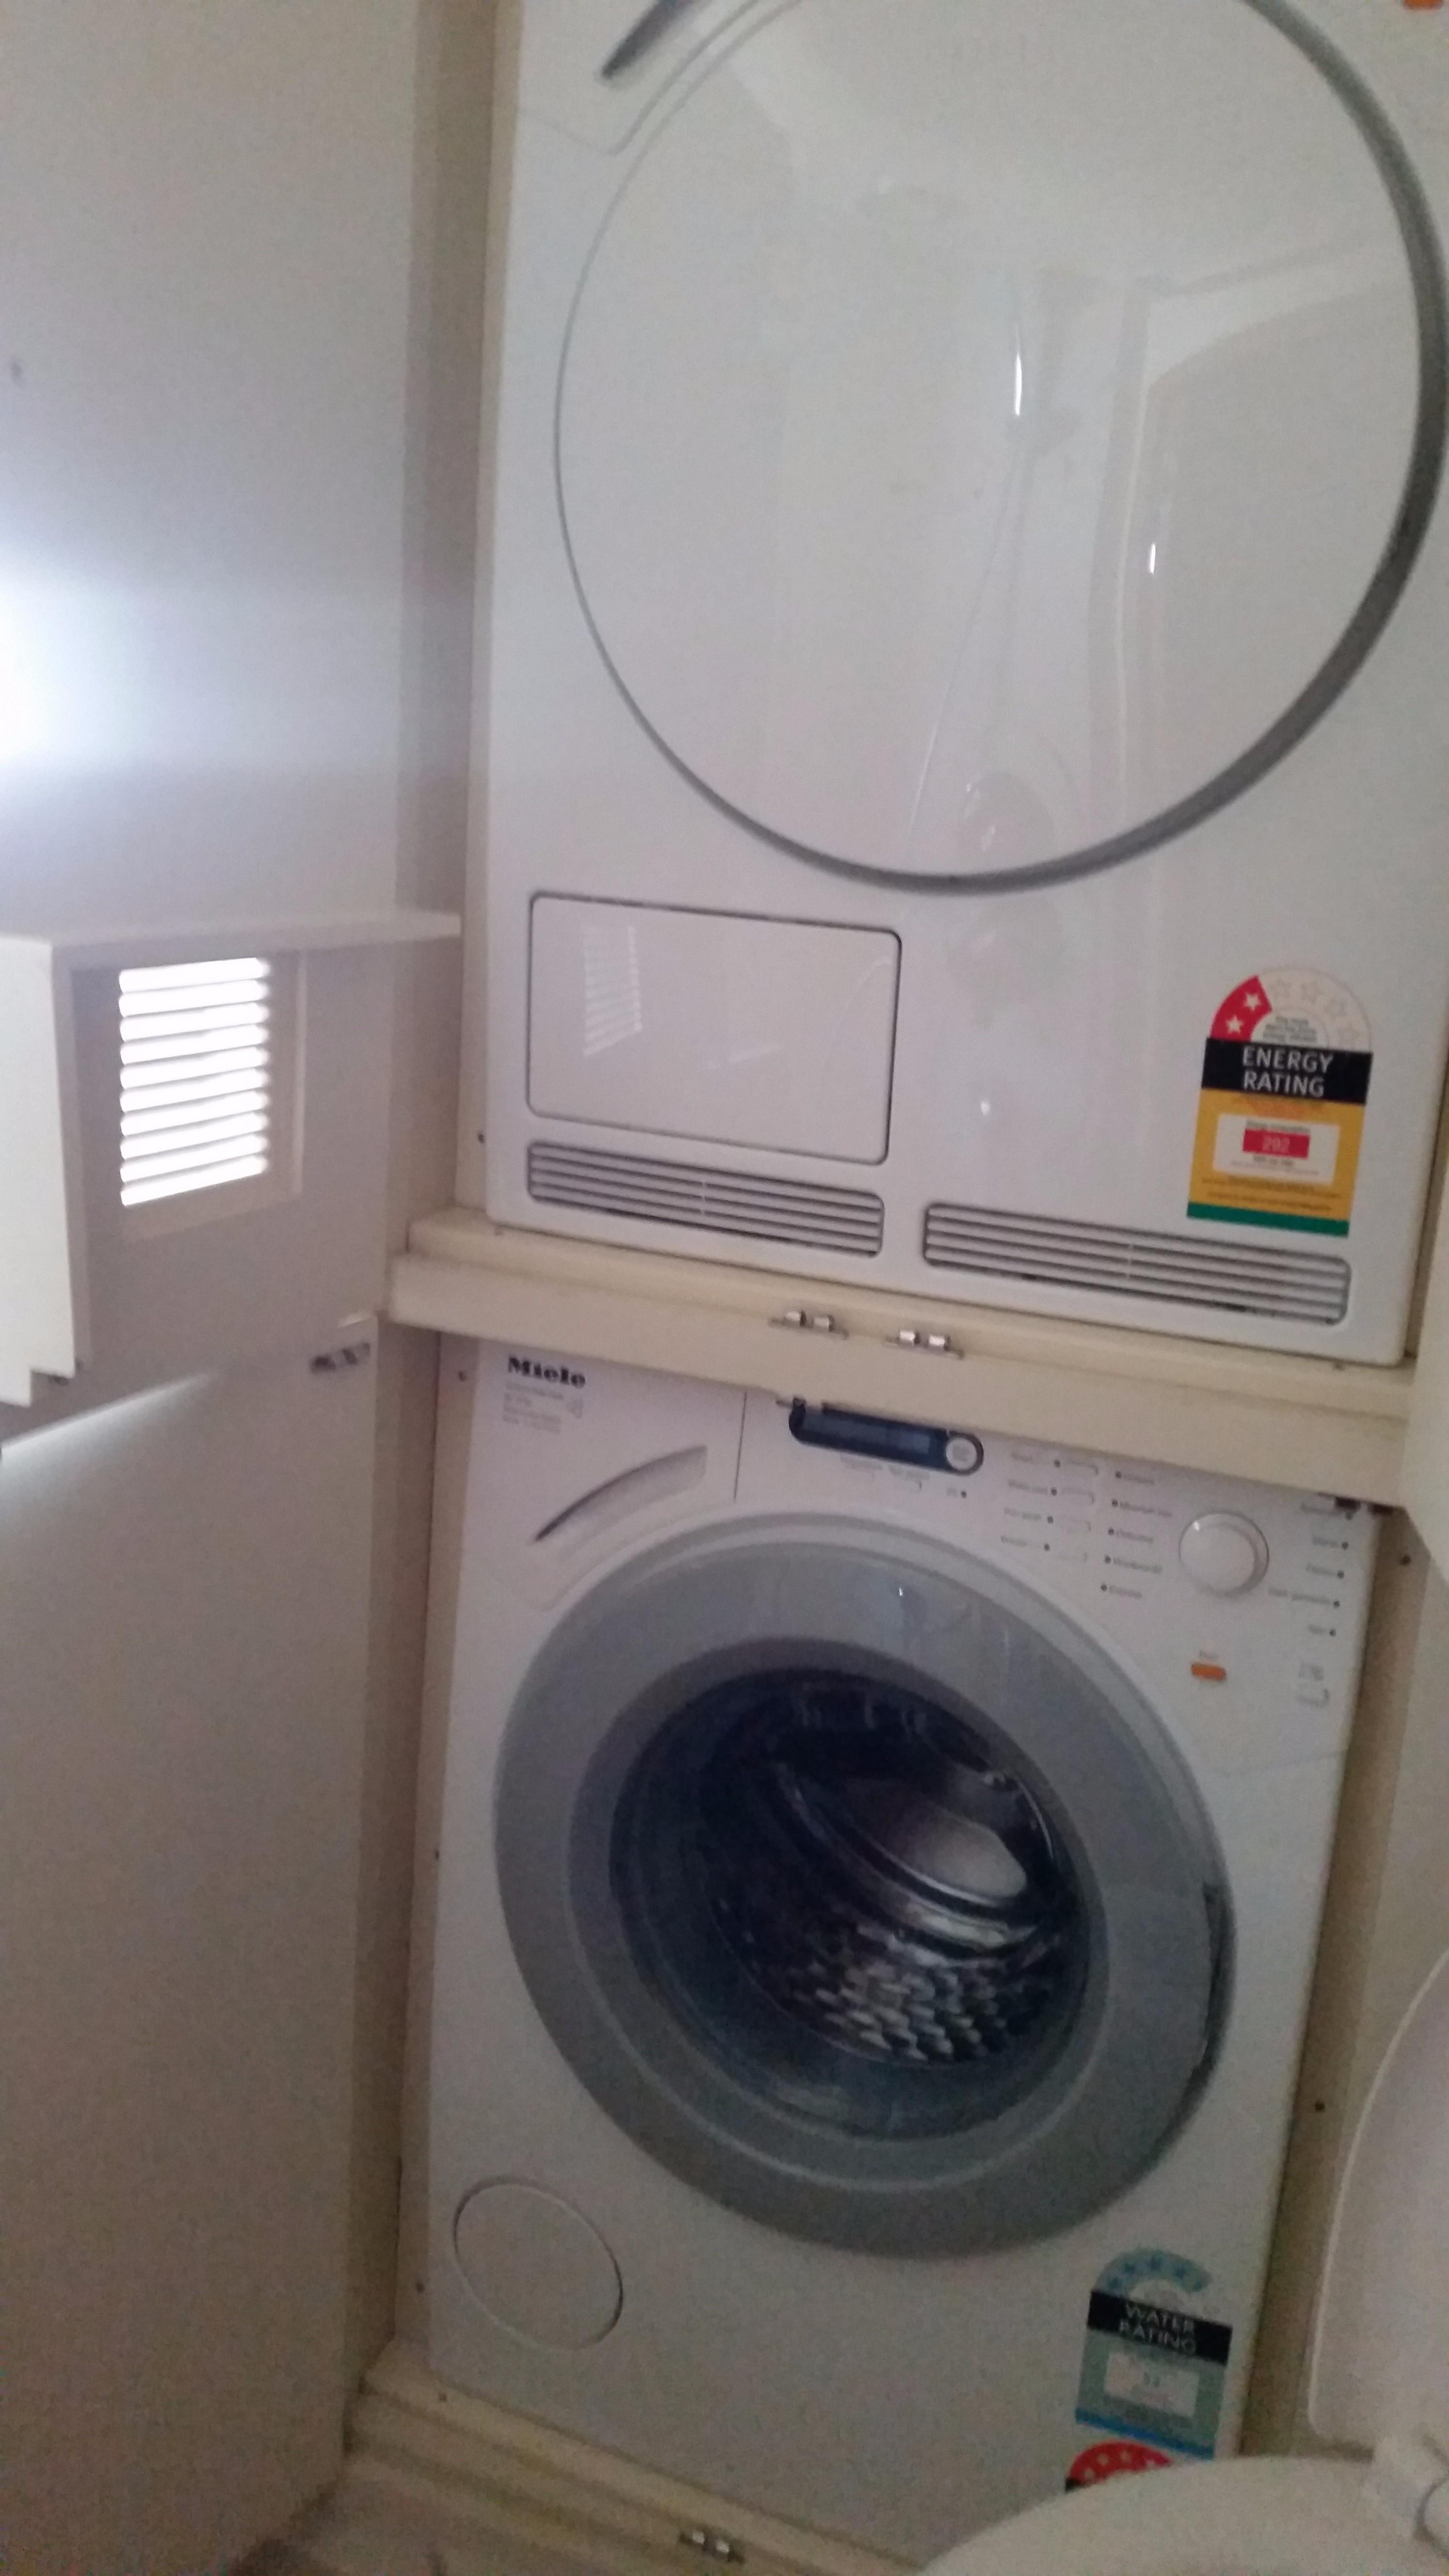 59 Grand Banks MIELE Washer/Dryer